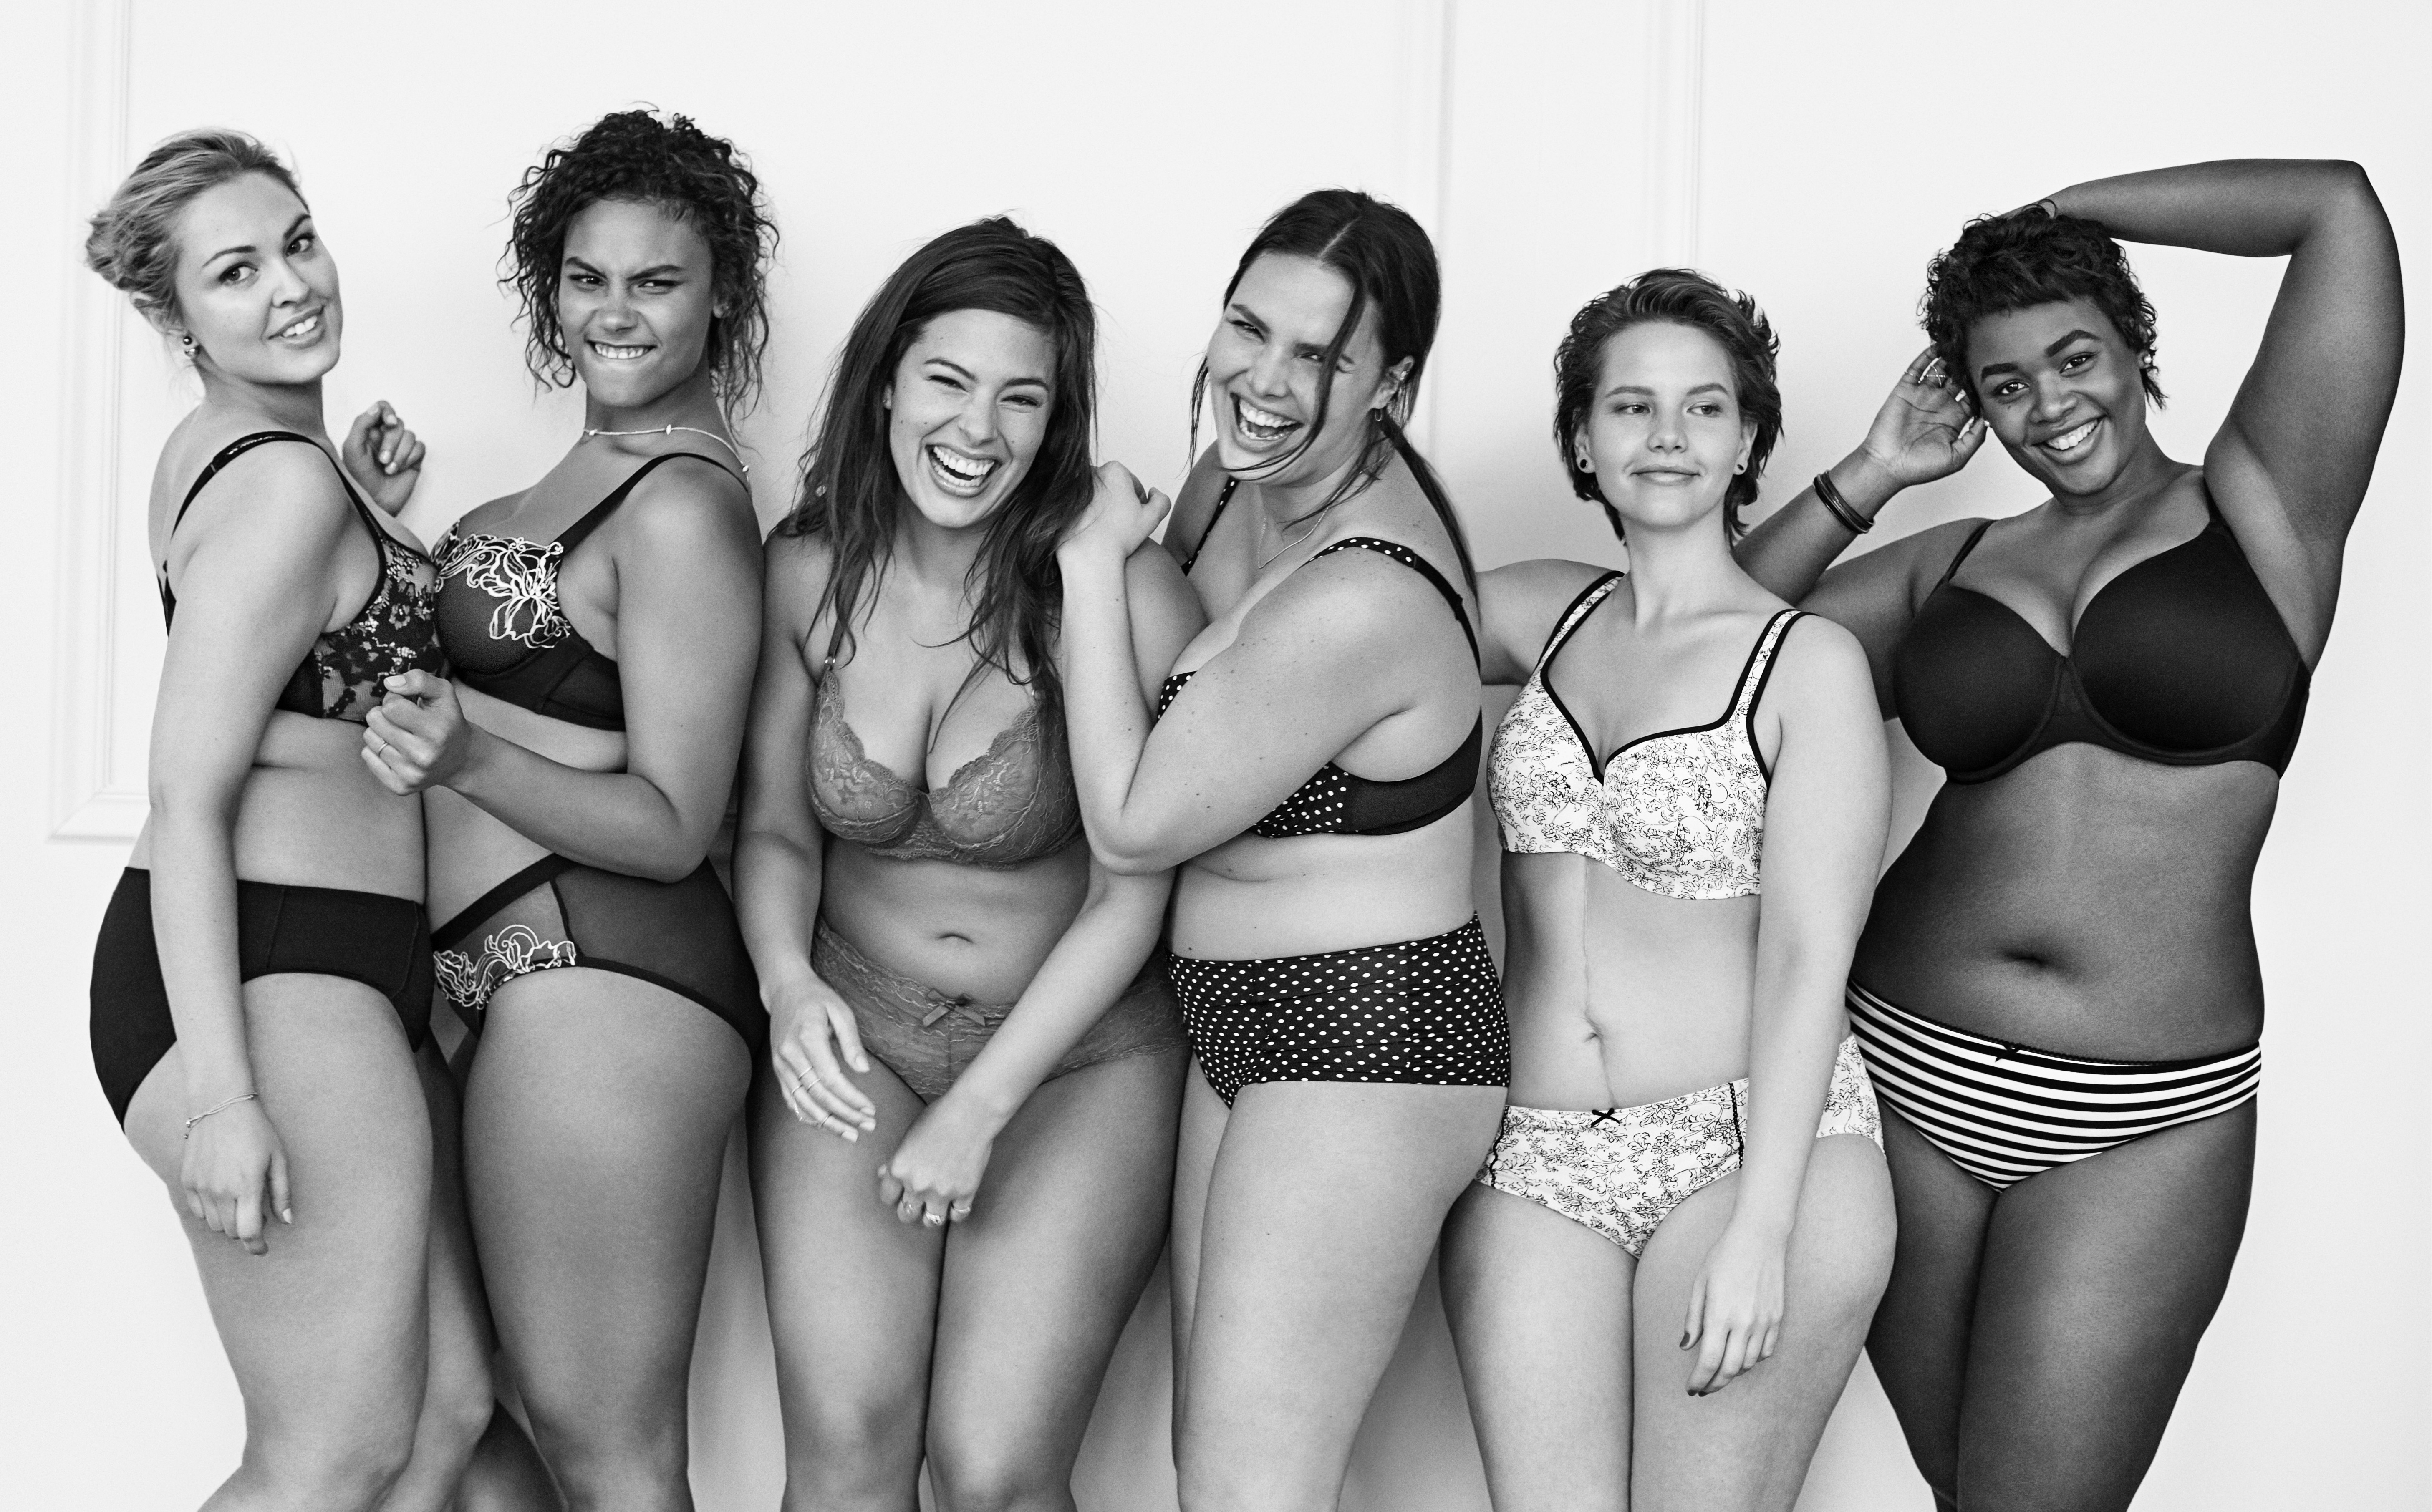 b283cb7b789 Lane Bryant Goes After Victoria's Secret With #ImNoAngel Campaign.